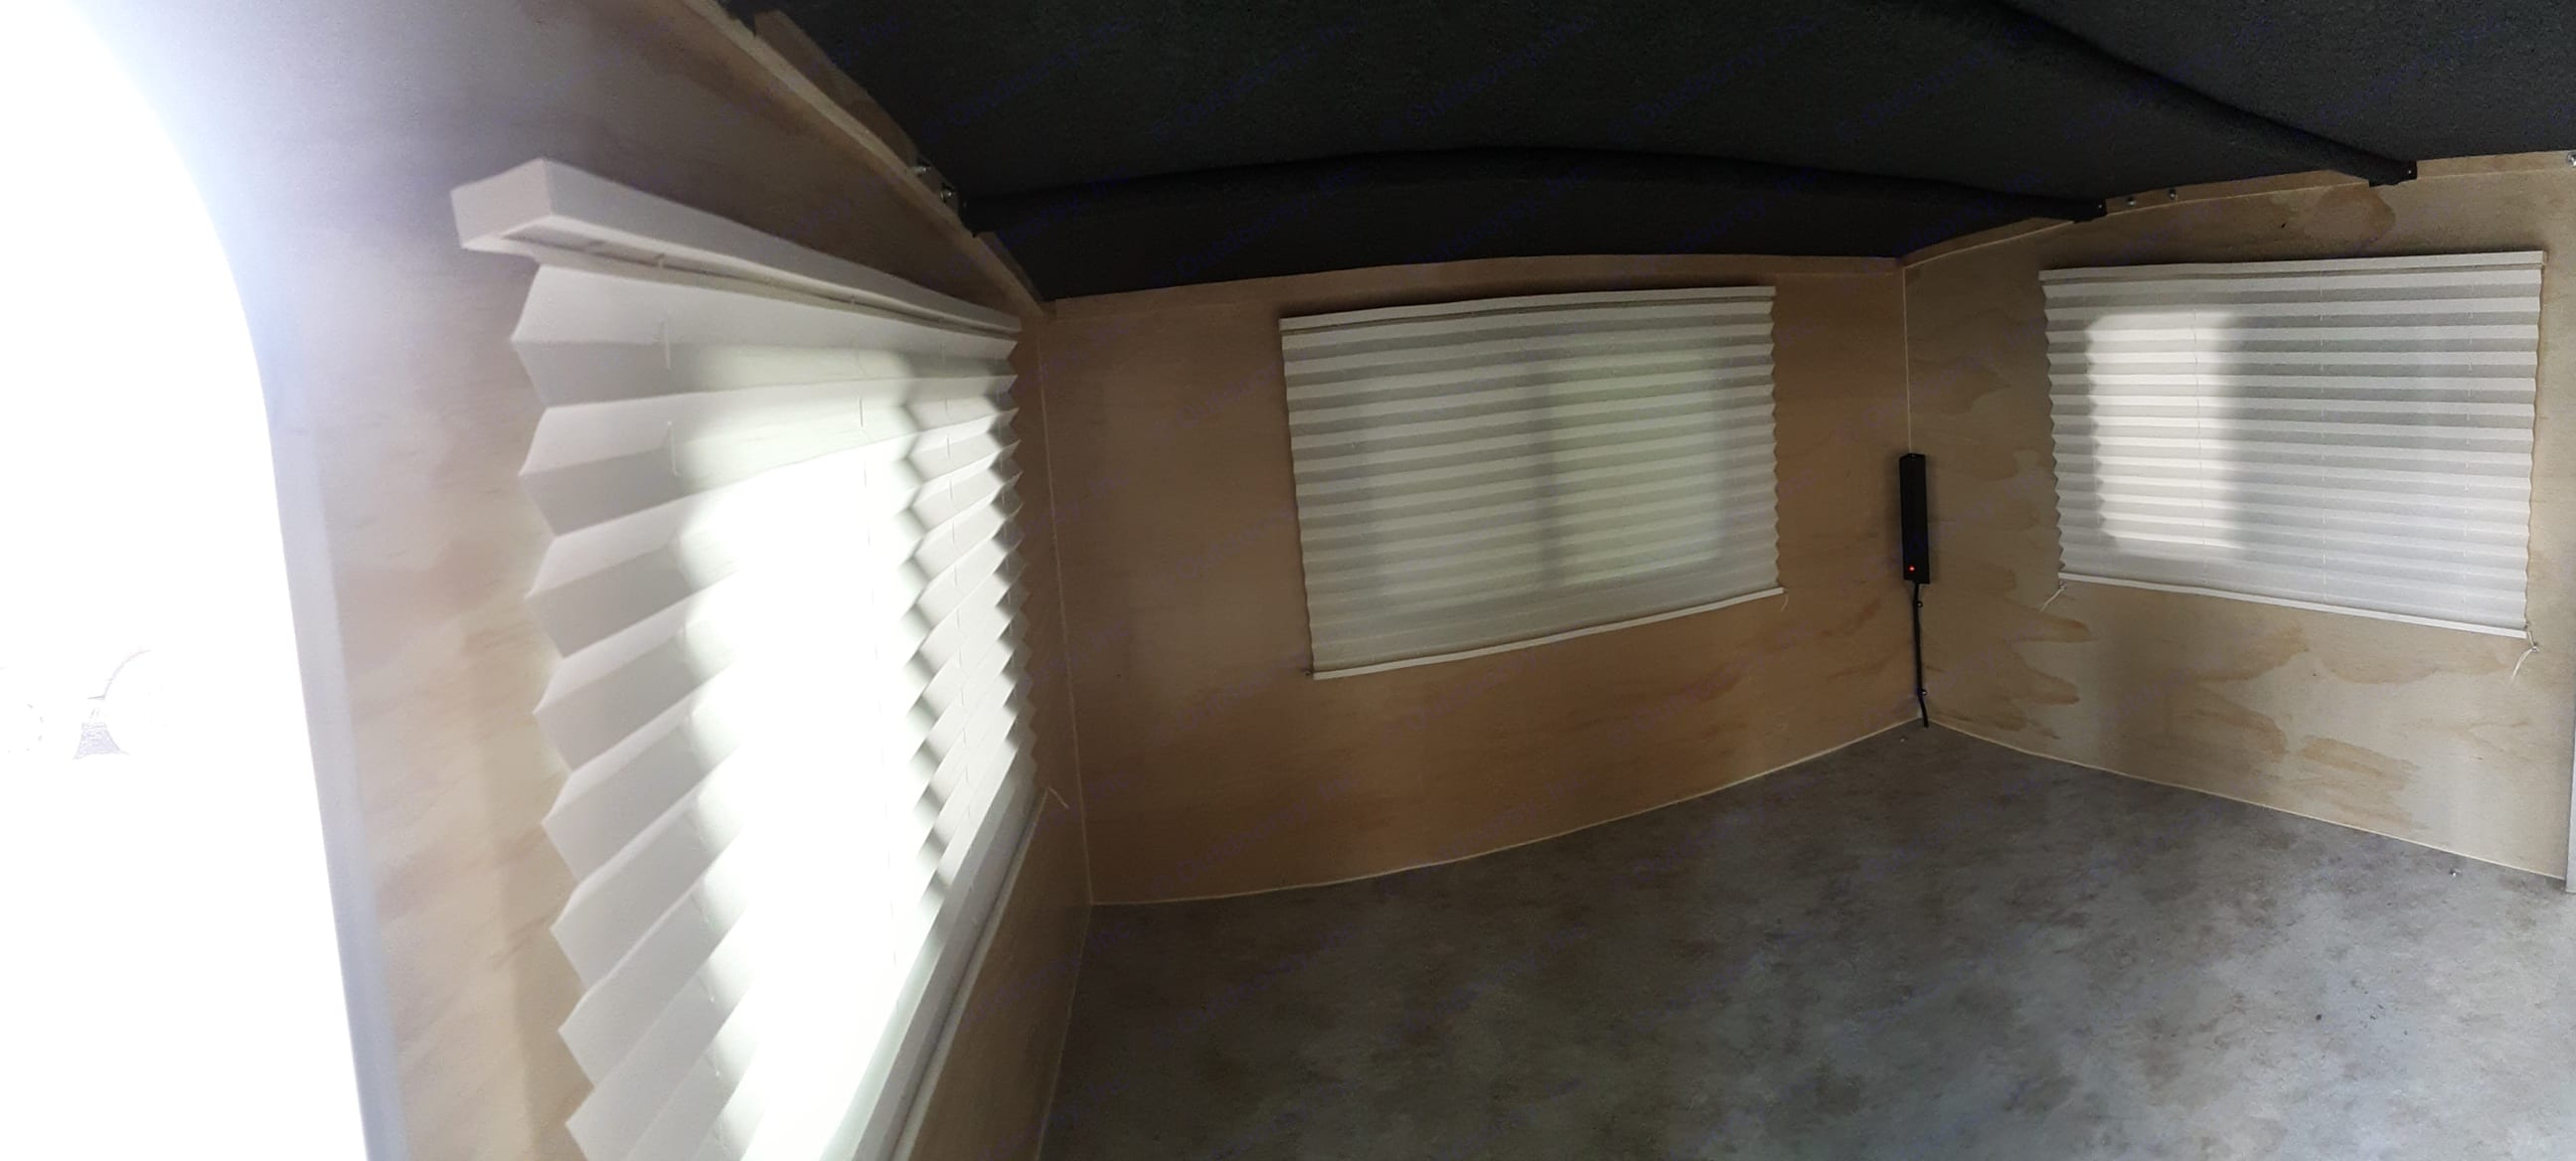 6X8 Cabin fits a queen size mattress.  Blinds on all 3 windows give plenty of privacy.  . Runaway Campers Rangerunner 2019